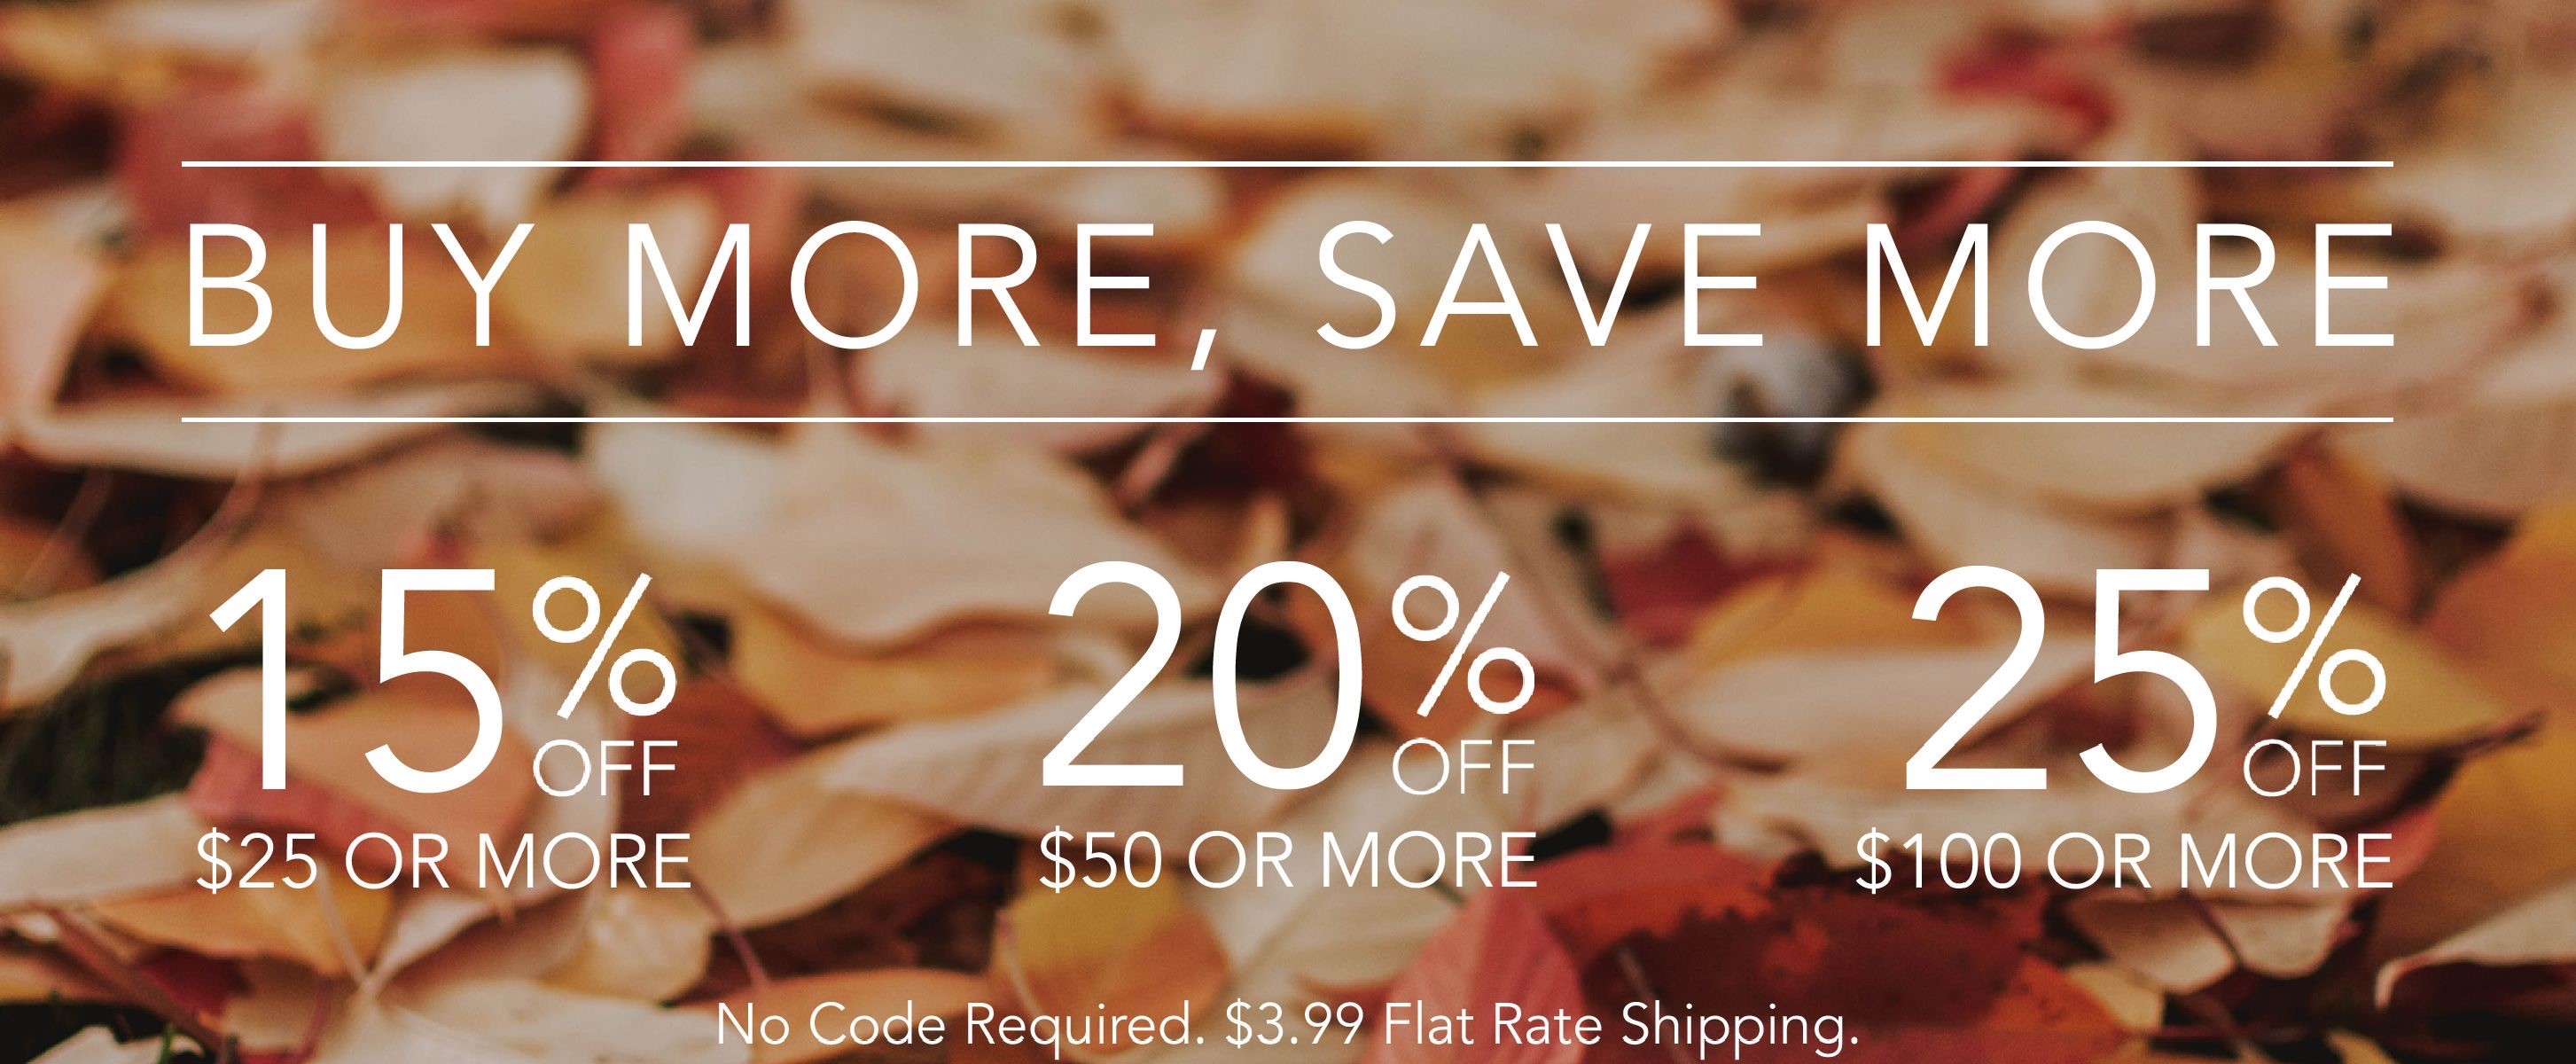 buy-more-save-more-special-offers-fall-banner-.jpg